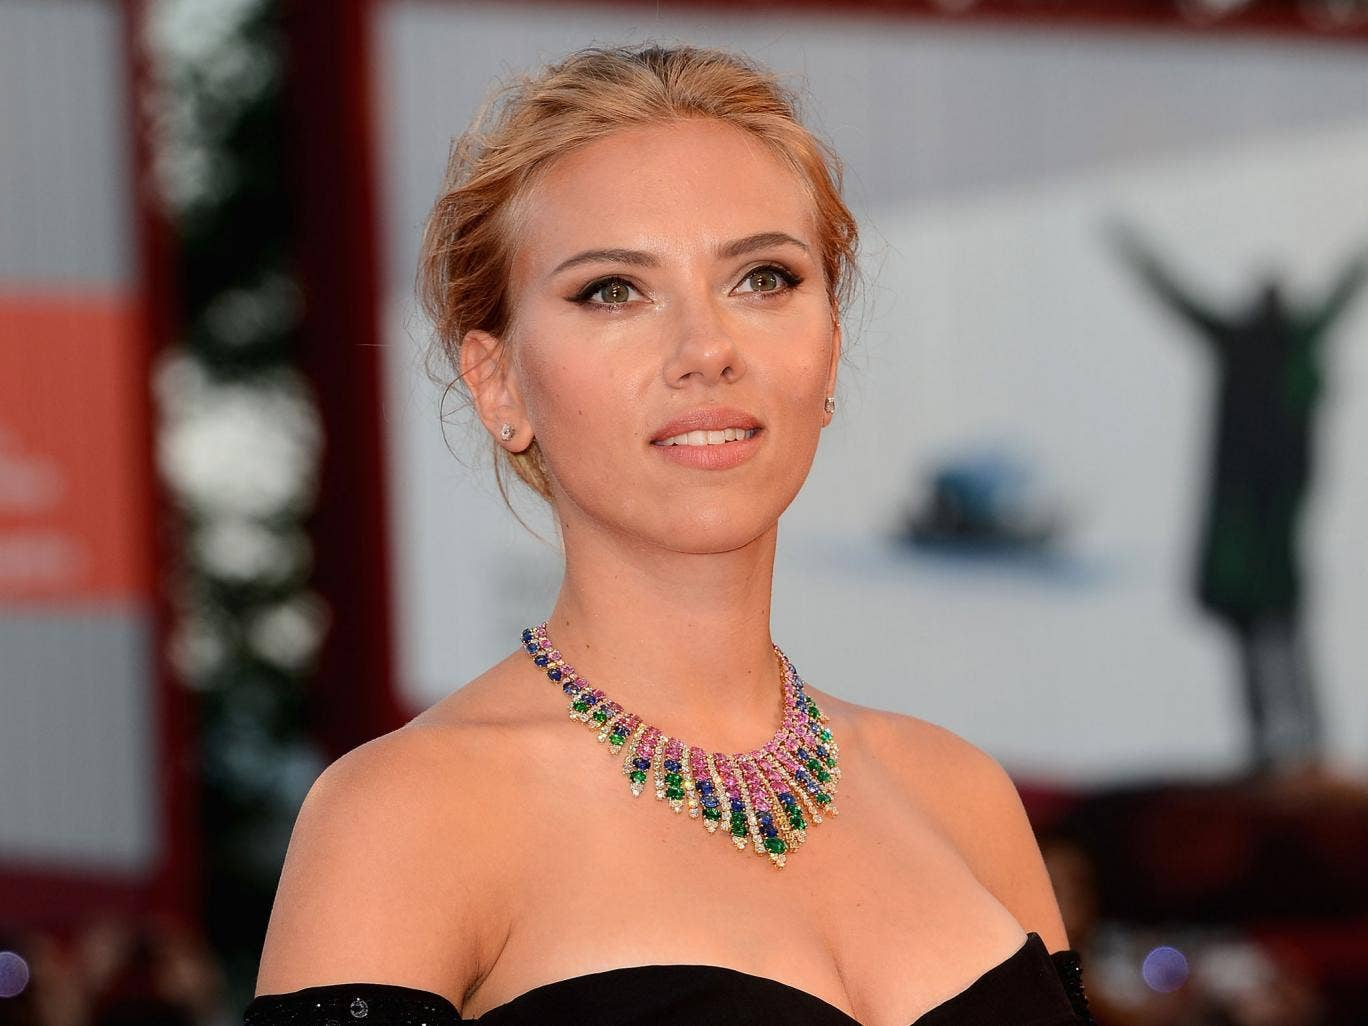 In 'Her', we only hear Ms Johansson, we do not see her